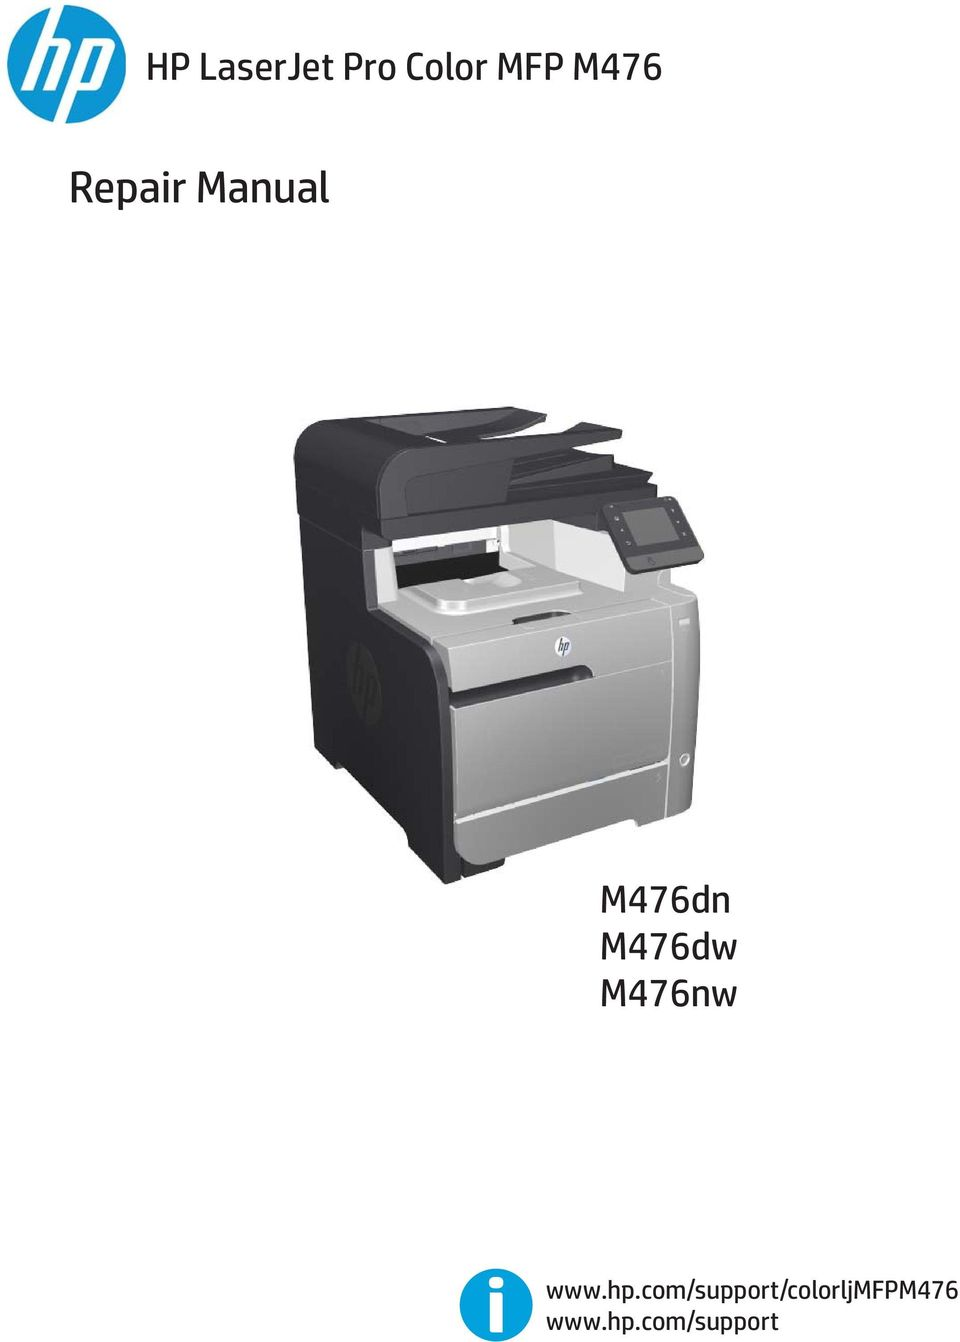 1 HP LaserJet Pro Color MFP M476 Repair Manual M476dn M476dw M476nw. M476dw  M476nw www.hp.